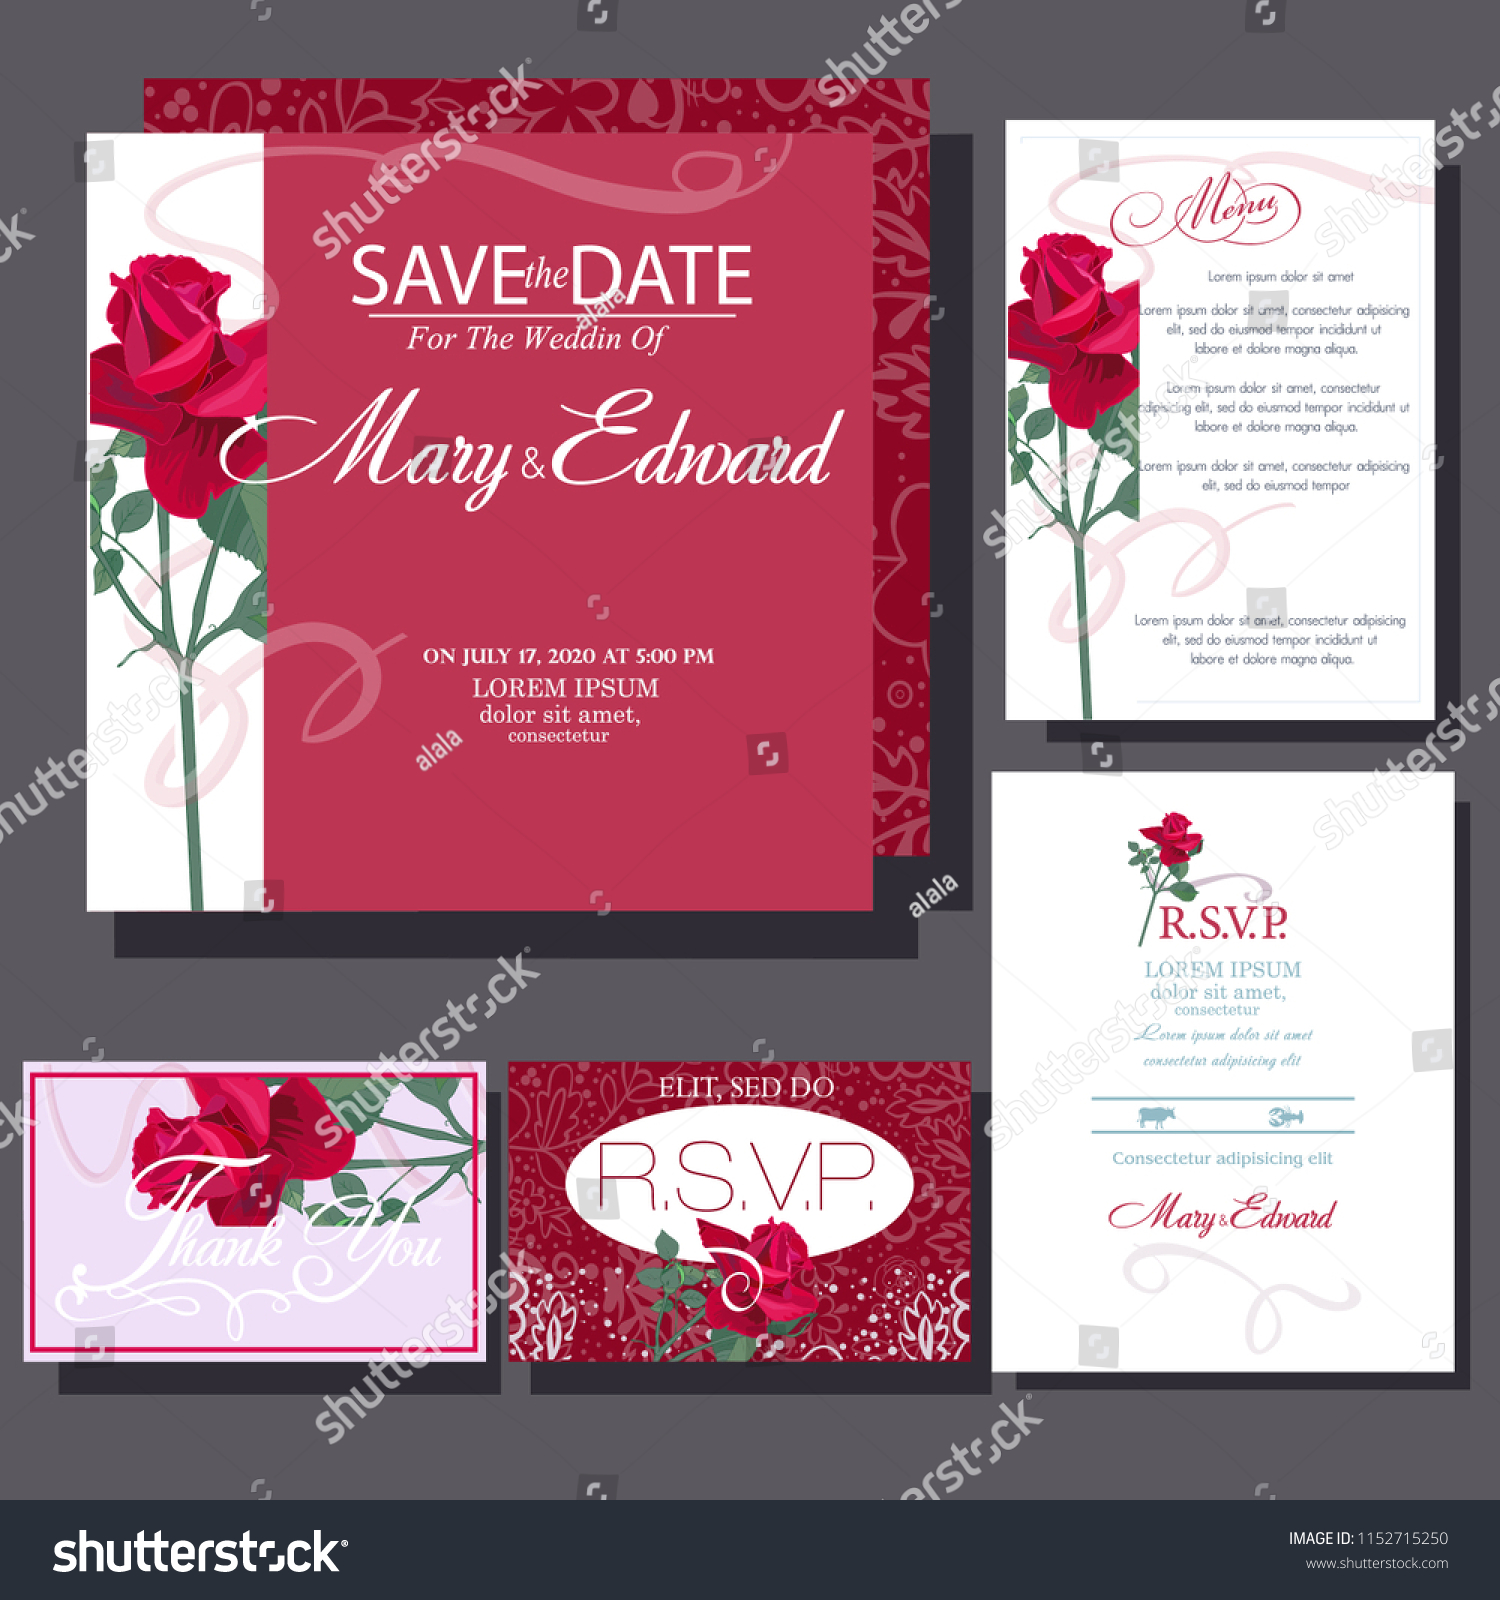 Wedding Invitation Cards Red Rose Stock Vector (Royalty Free ...